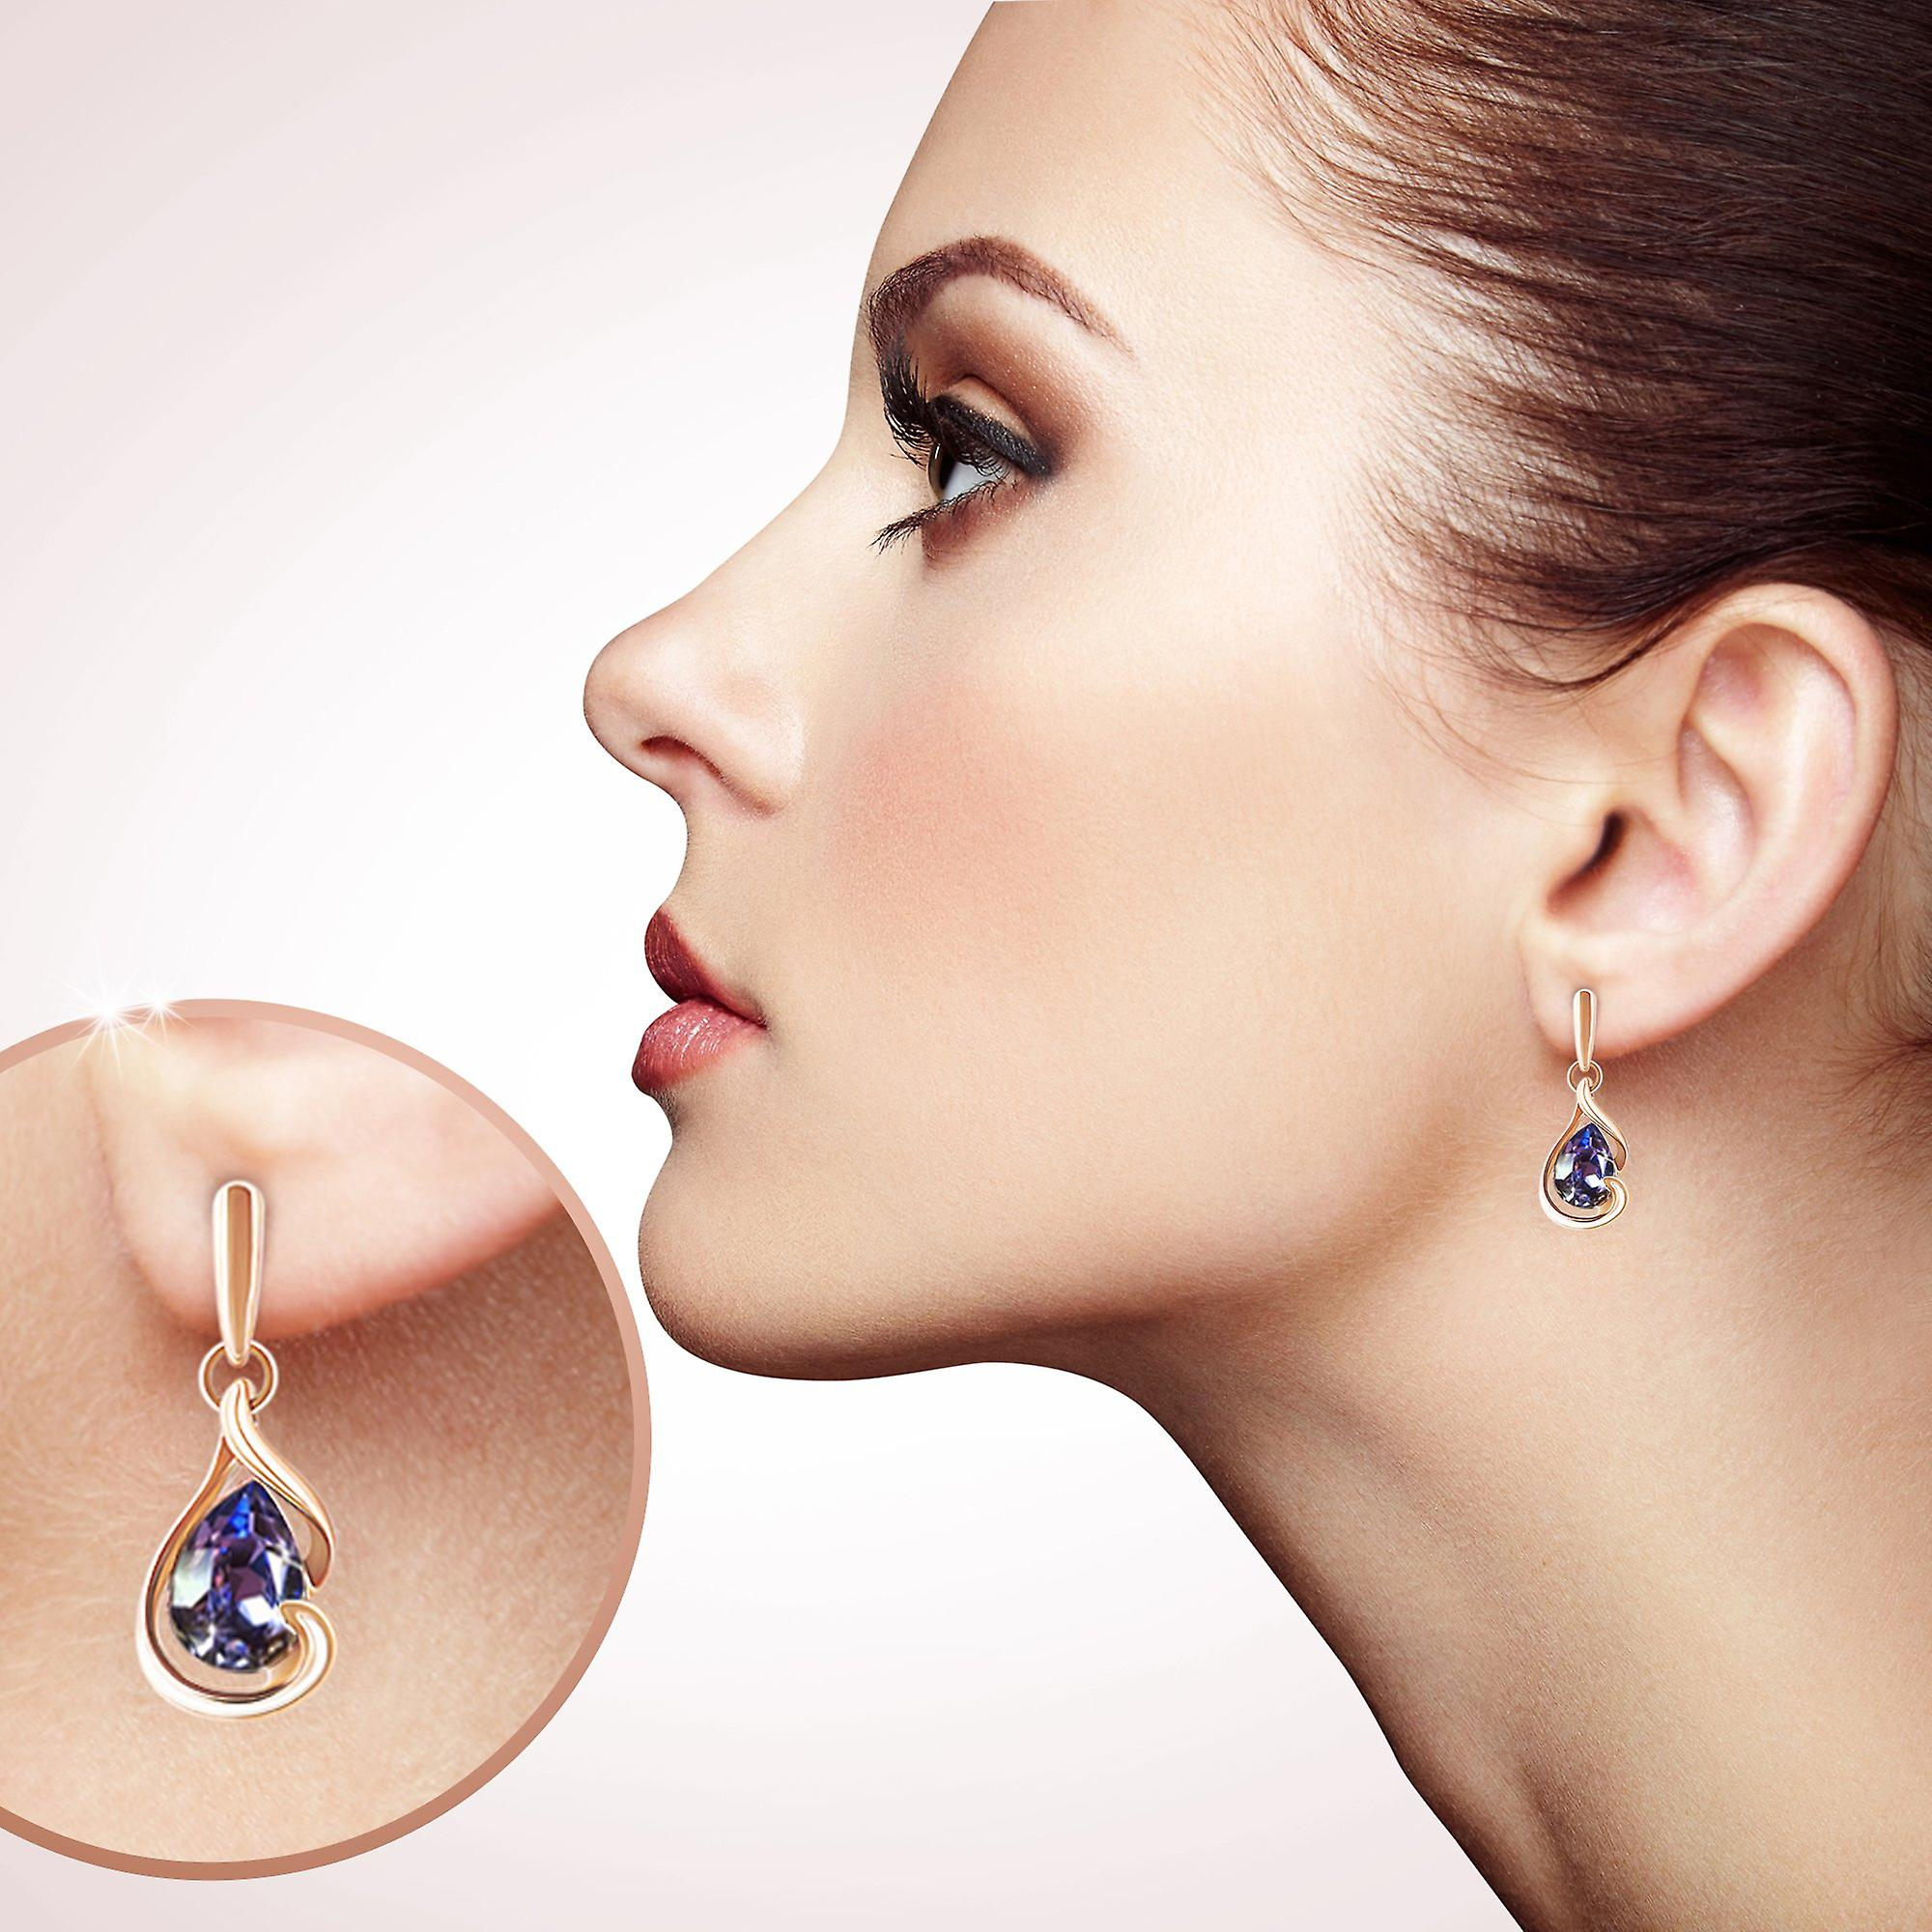 Pair of stud earrings for women with swarovski crystal. gold plated earrings. by 2splendid. gift box included. eqz001-gp